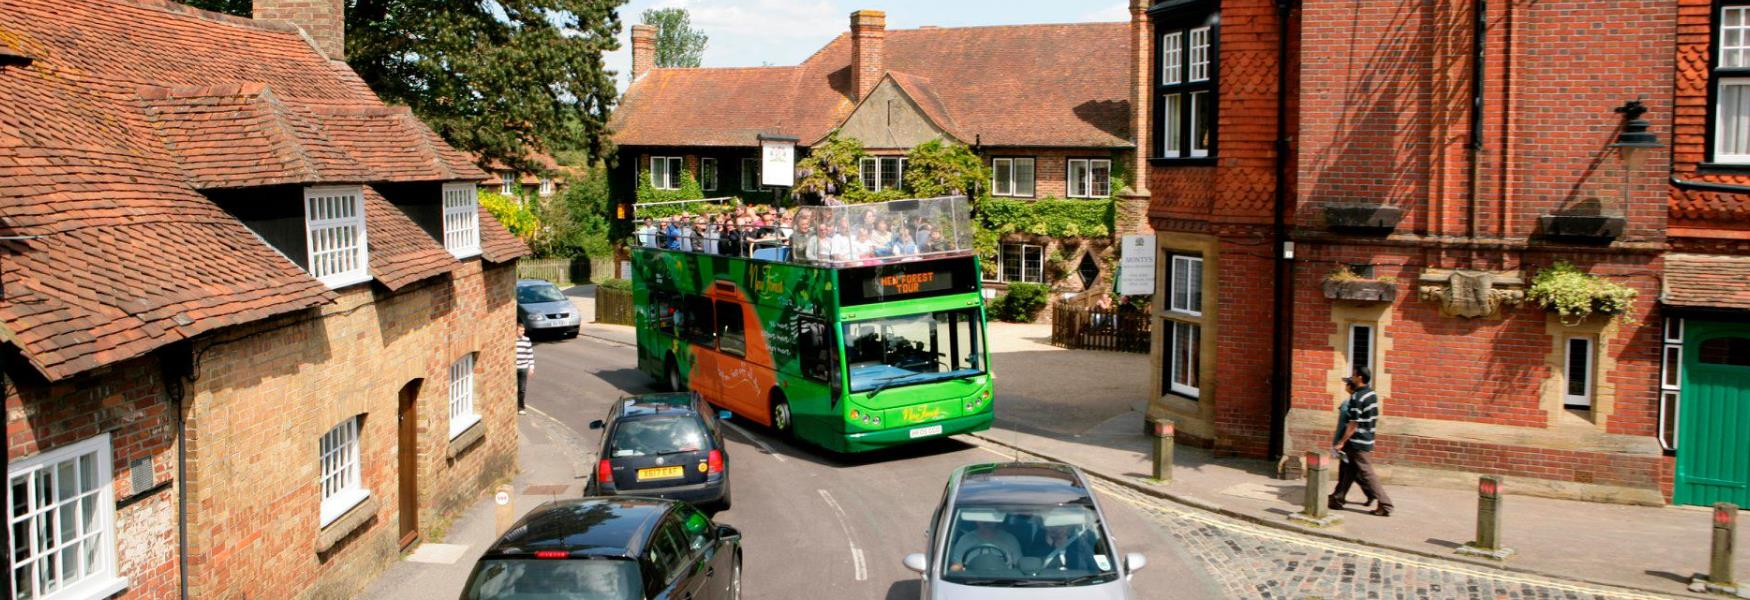 The New Forest Tour Bus going through Beaulieu Village in the New Forest